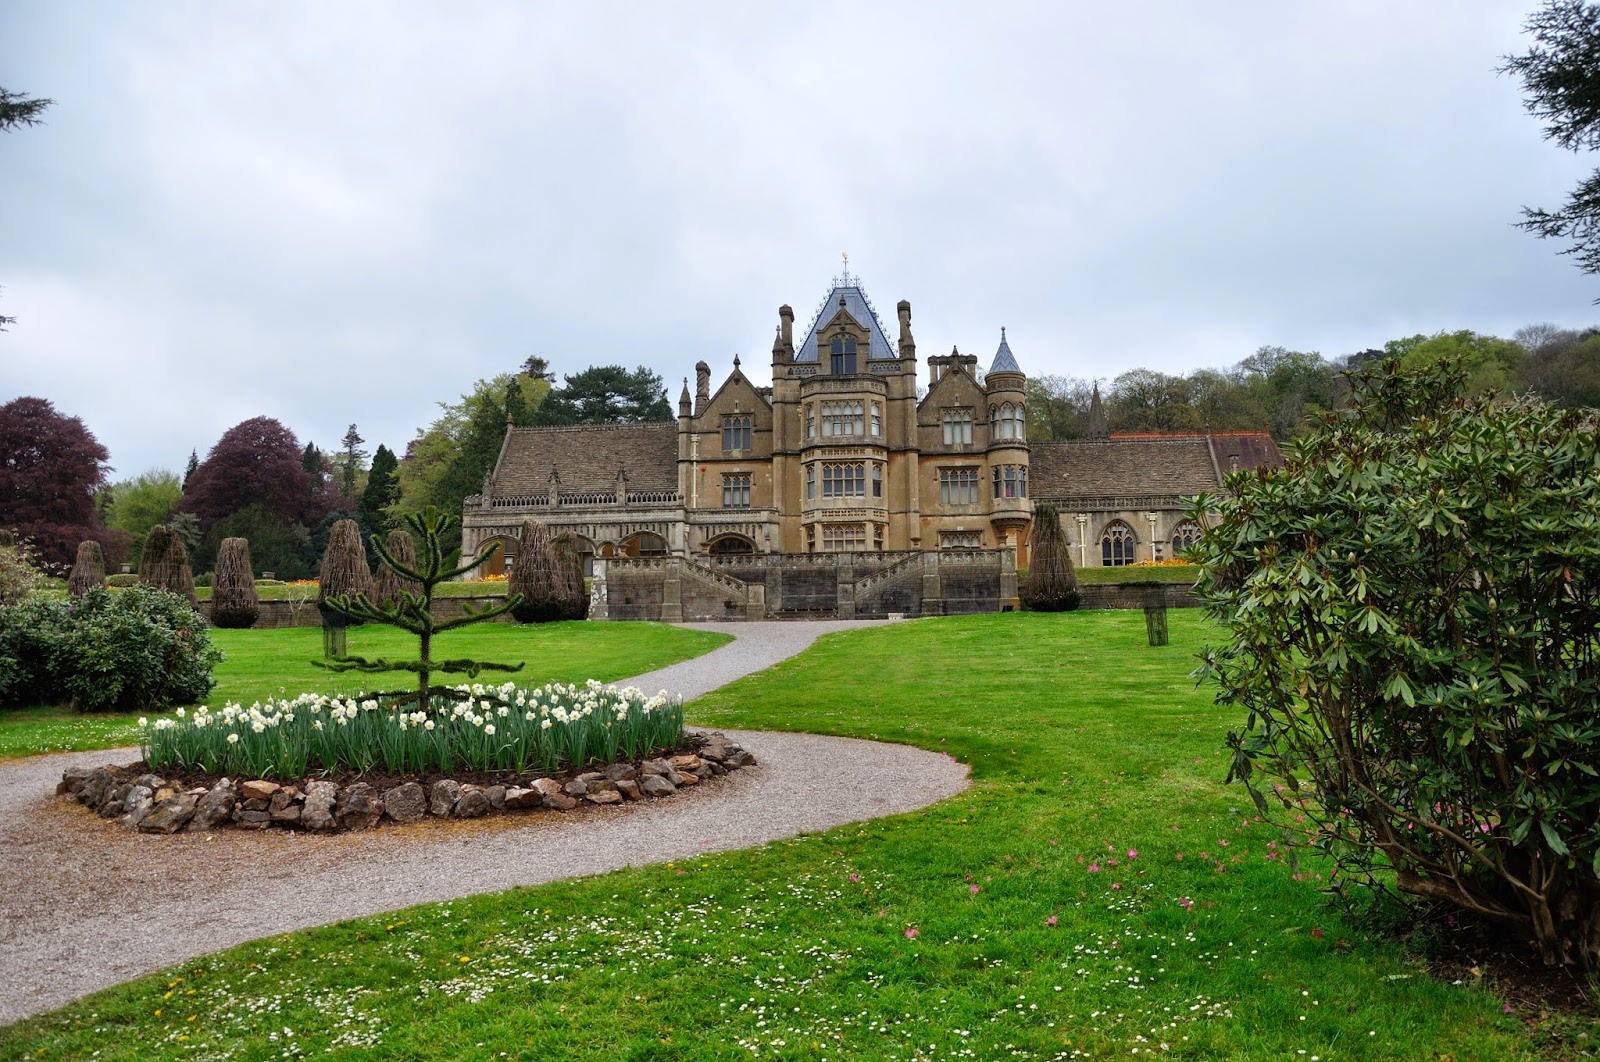 Tyntesfield